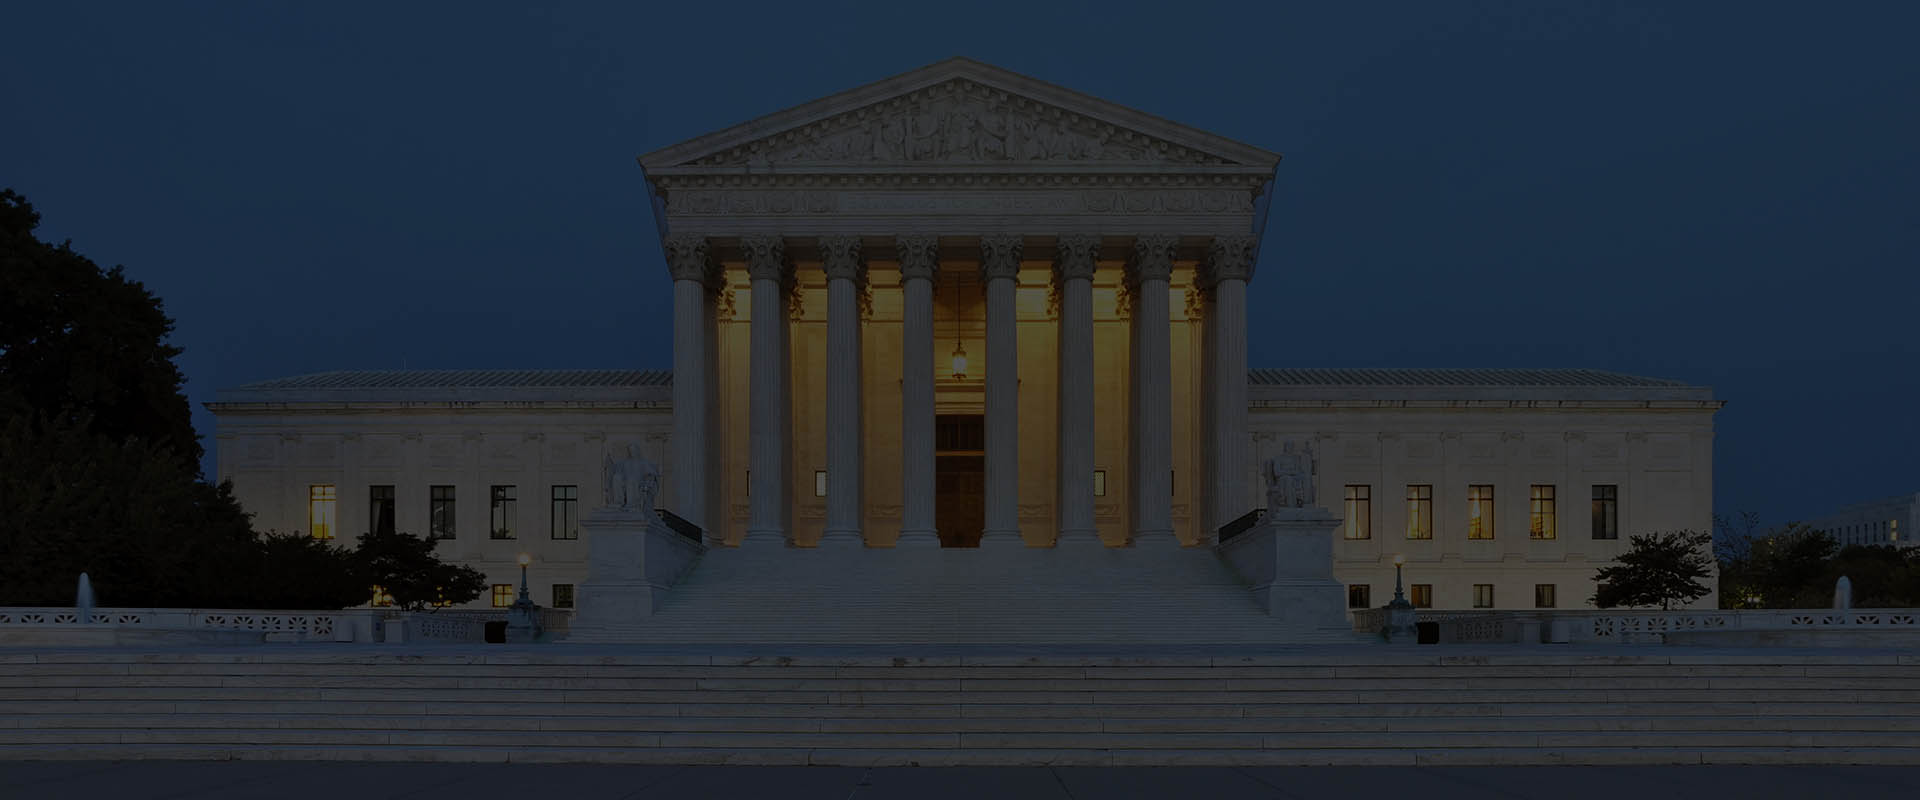 federal-court-background